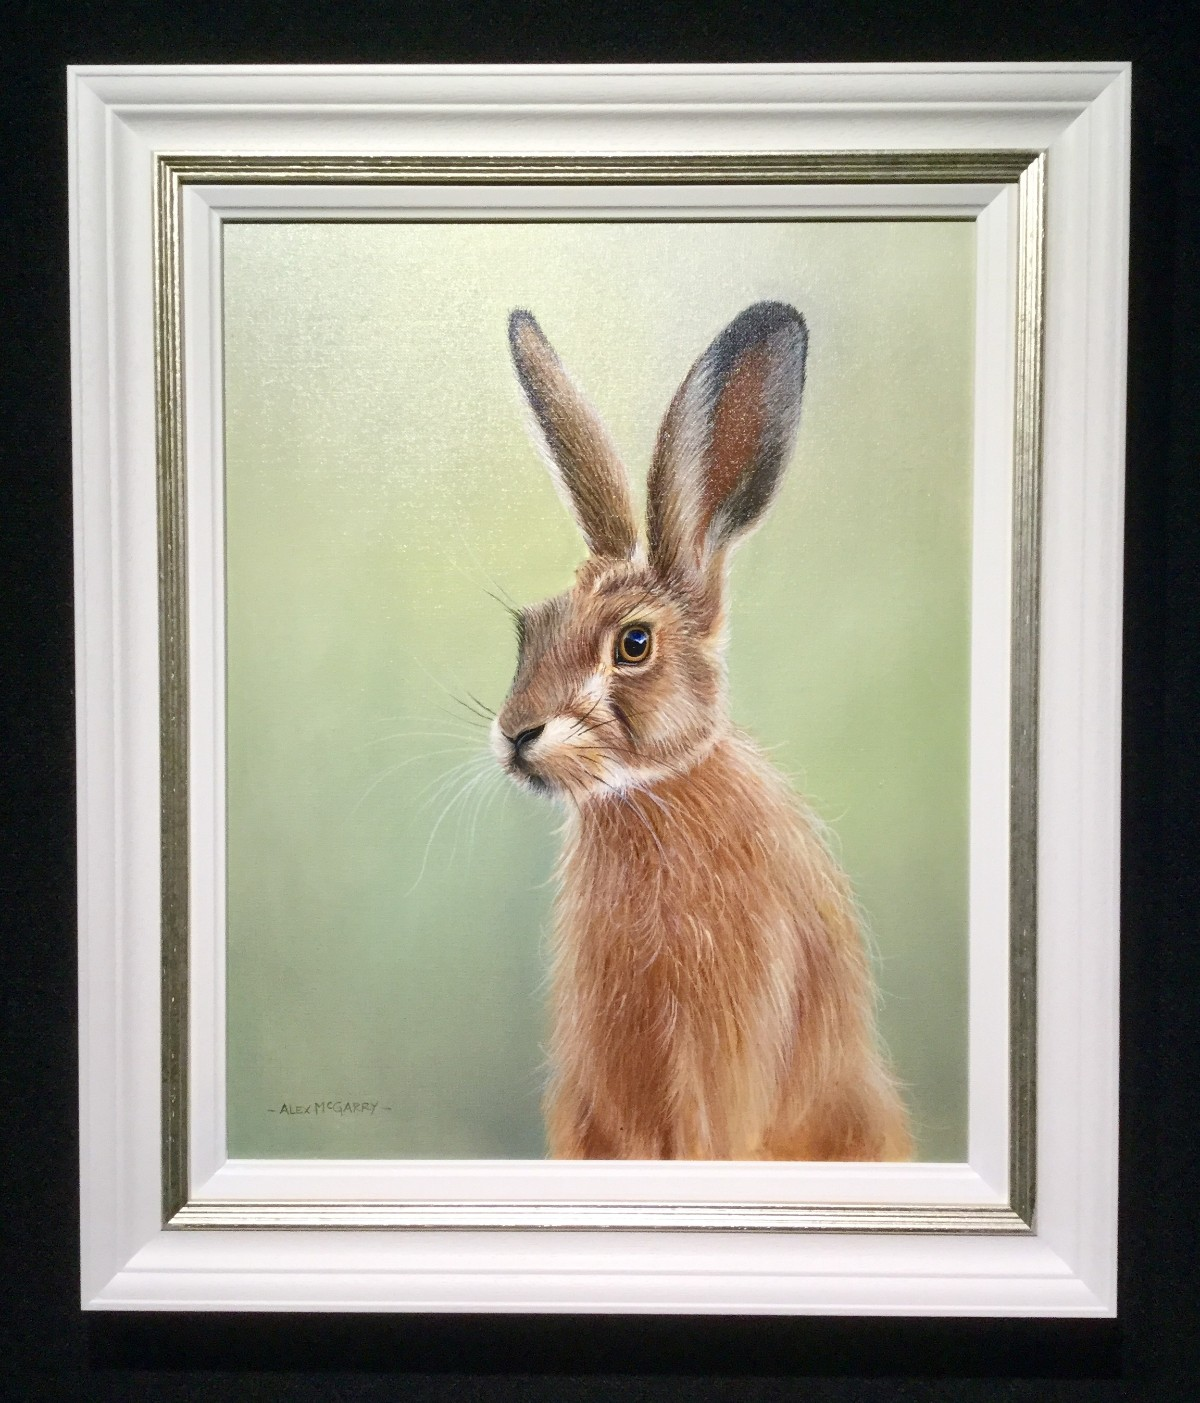 Inquisitive Hare by Alex McGarry